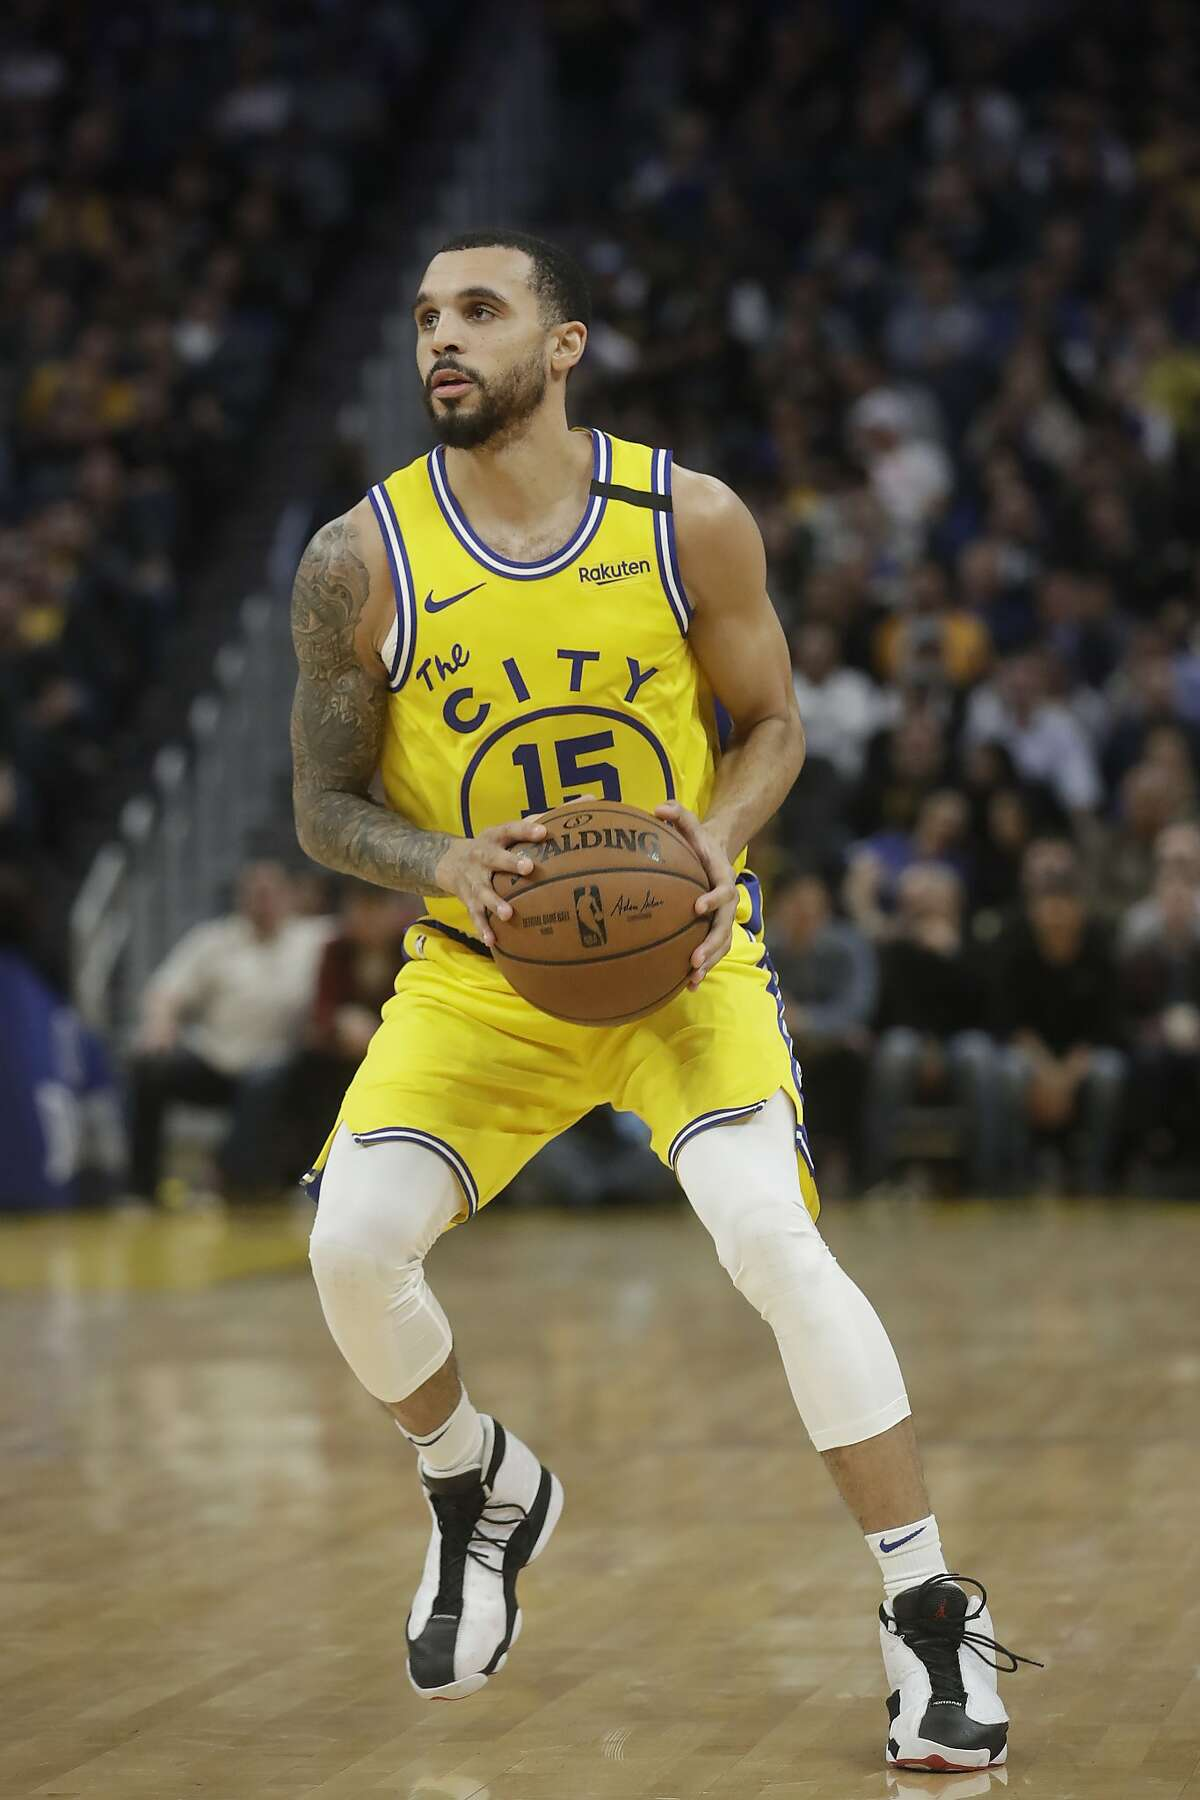 Golden State Warriors guard Mychal Mulder (15) against the Los Angeles Lakers during an NBA basketball game in San Francisco, Thursday, Feb. 27, 2020. (AP Photo/Jeff Chiu)